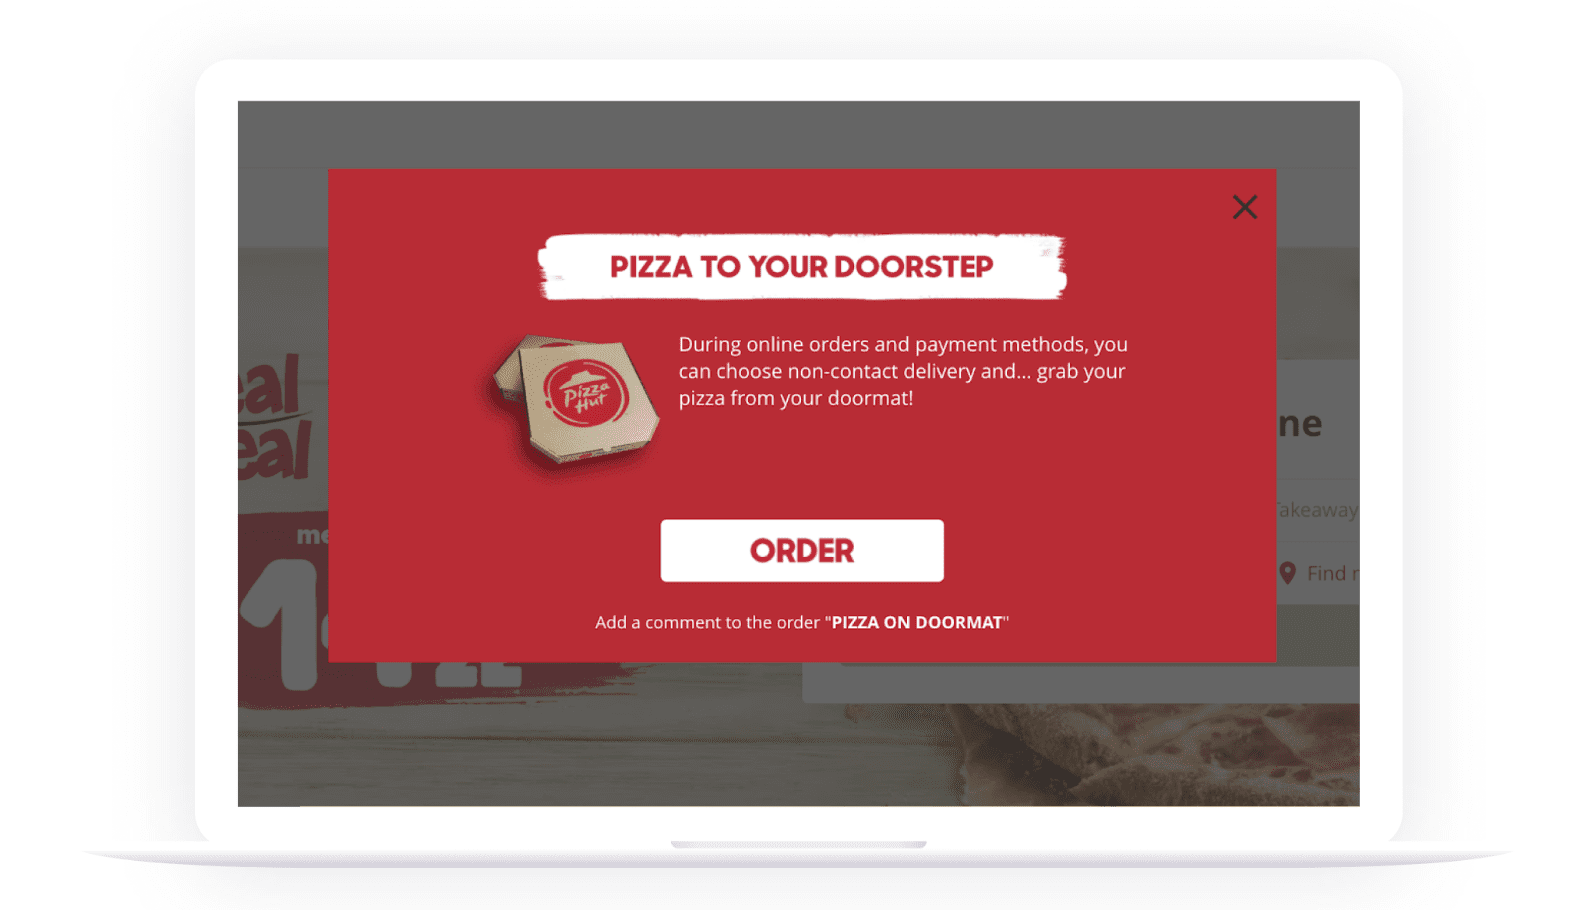 Pizza Hut's new feature - contact-free delivery